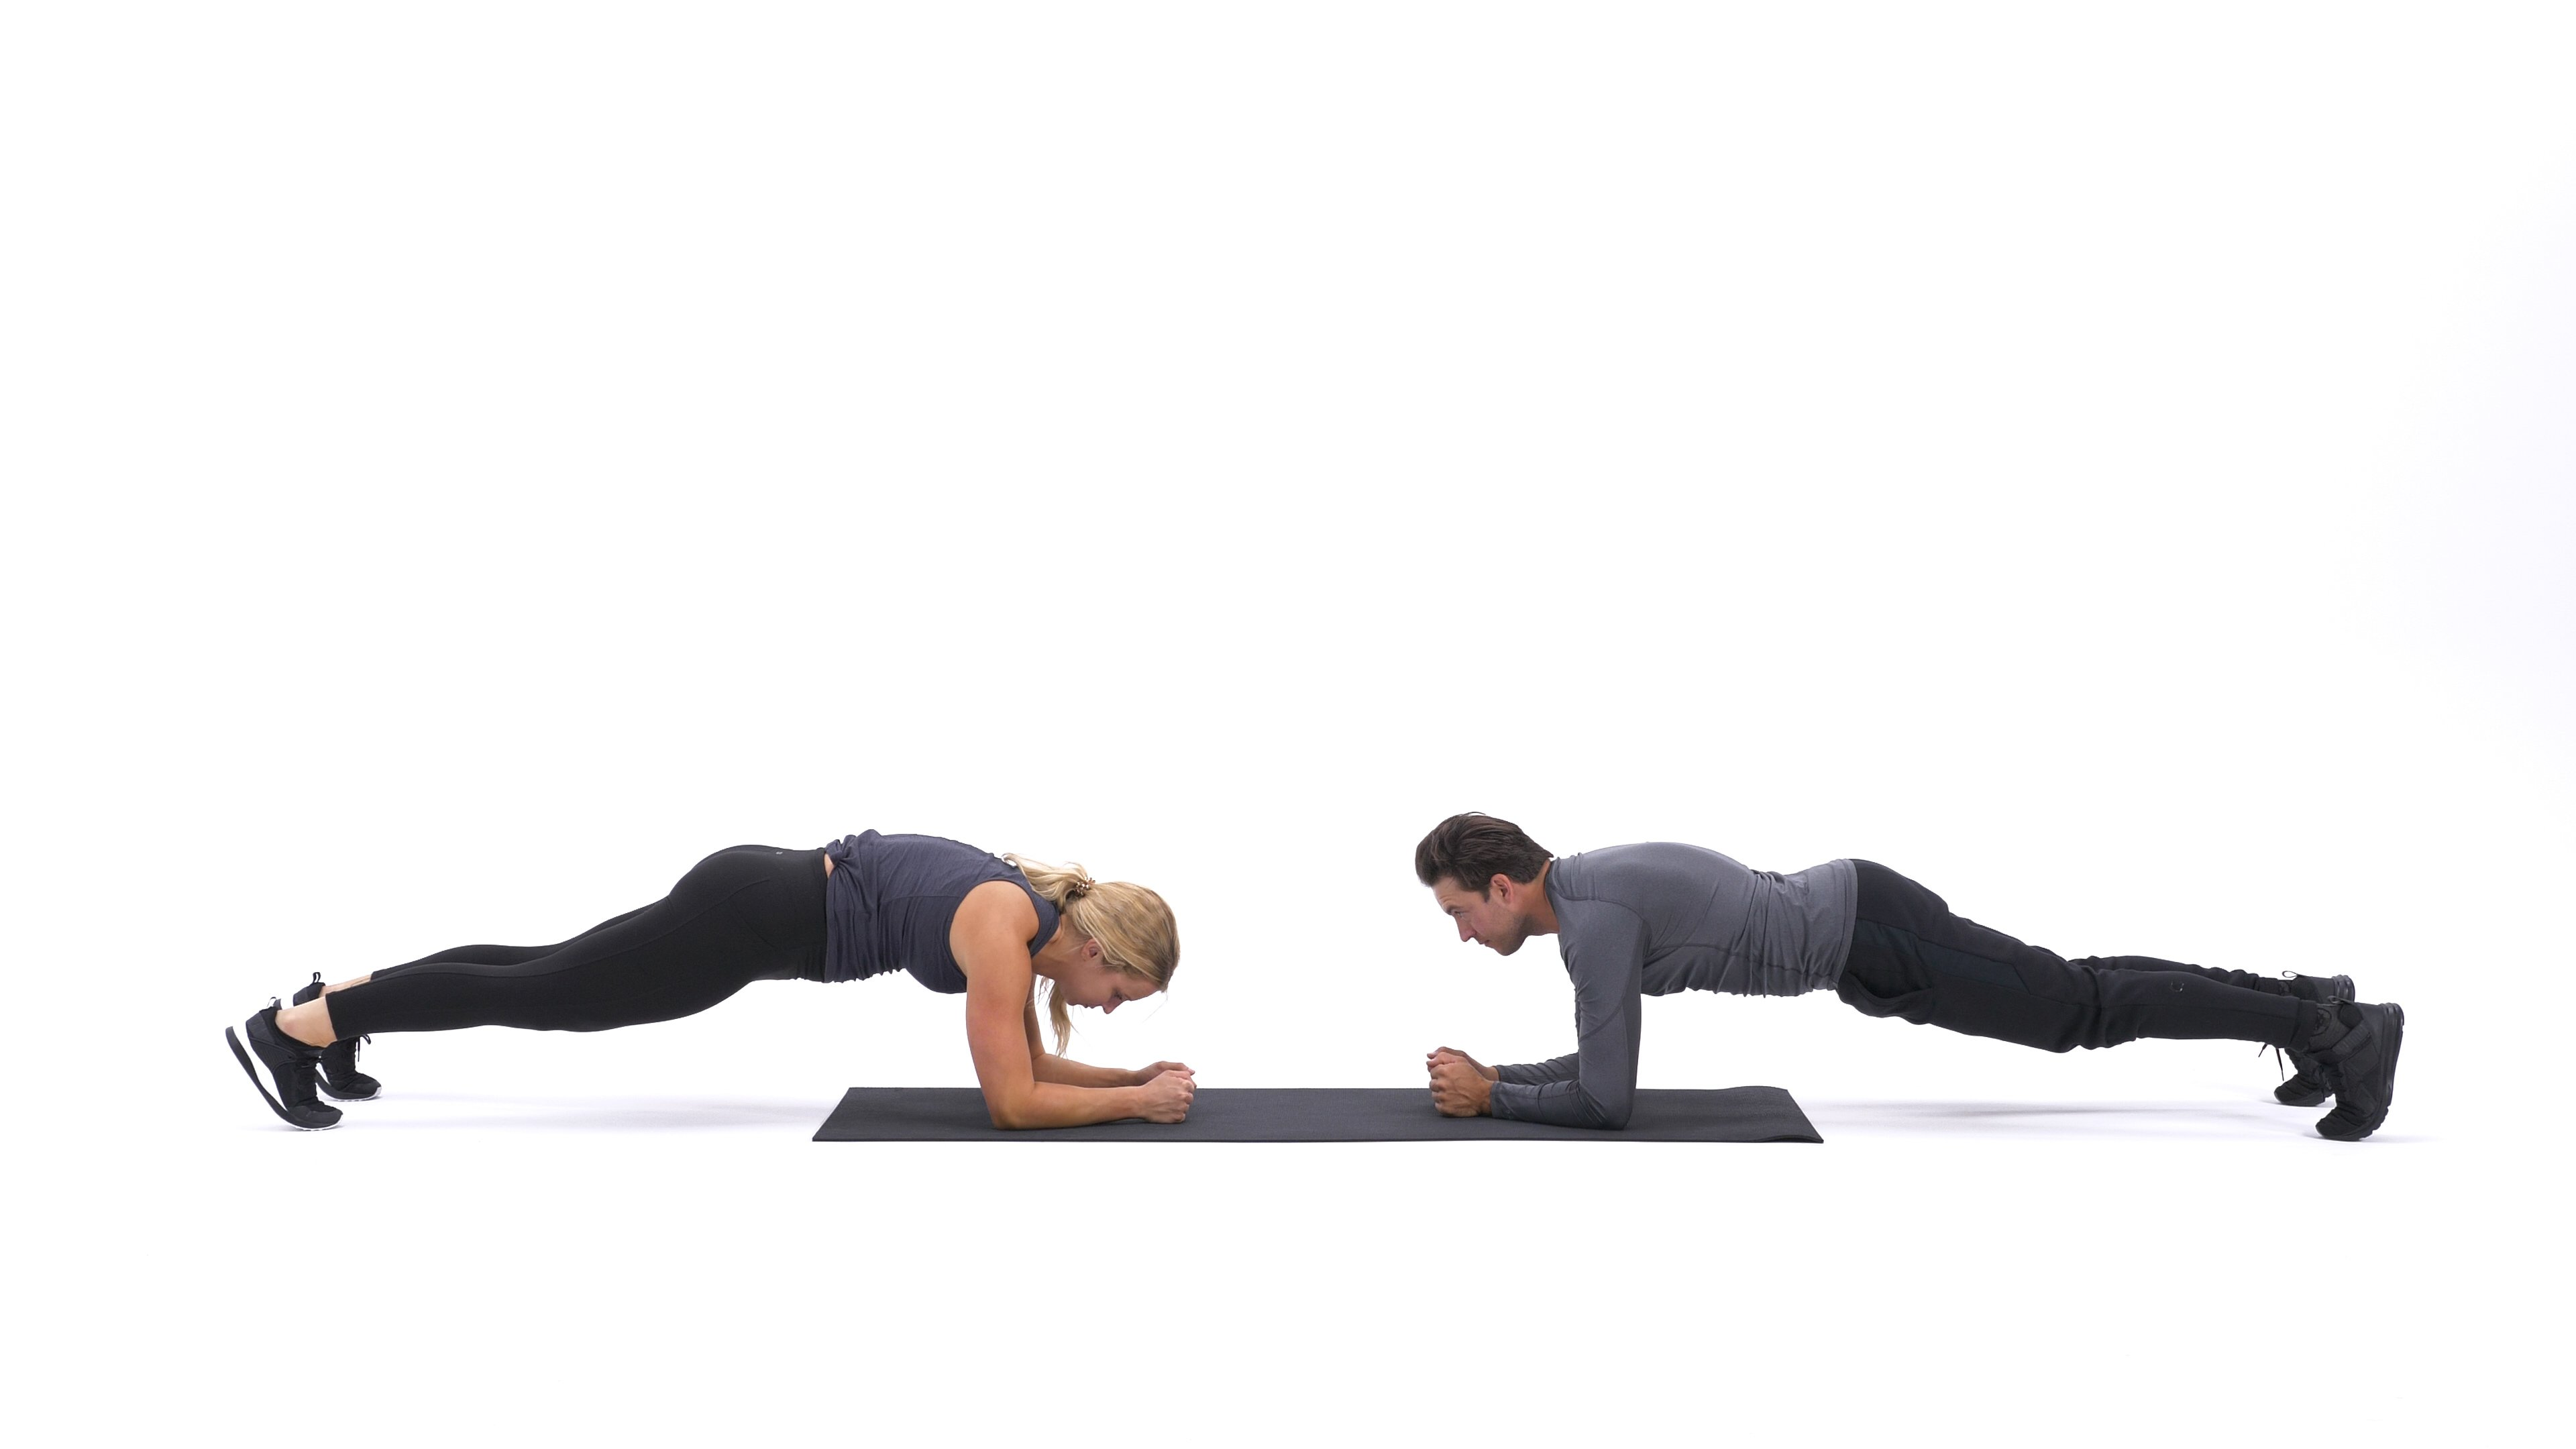 Partner plank with high-five image